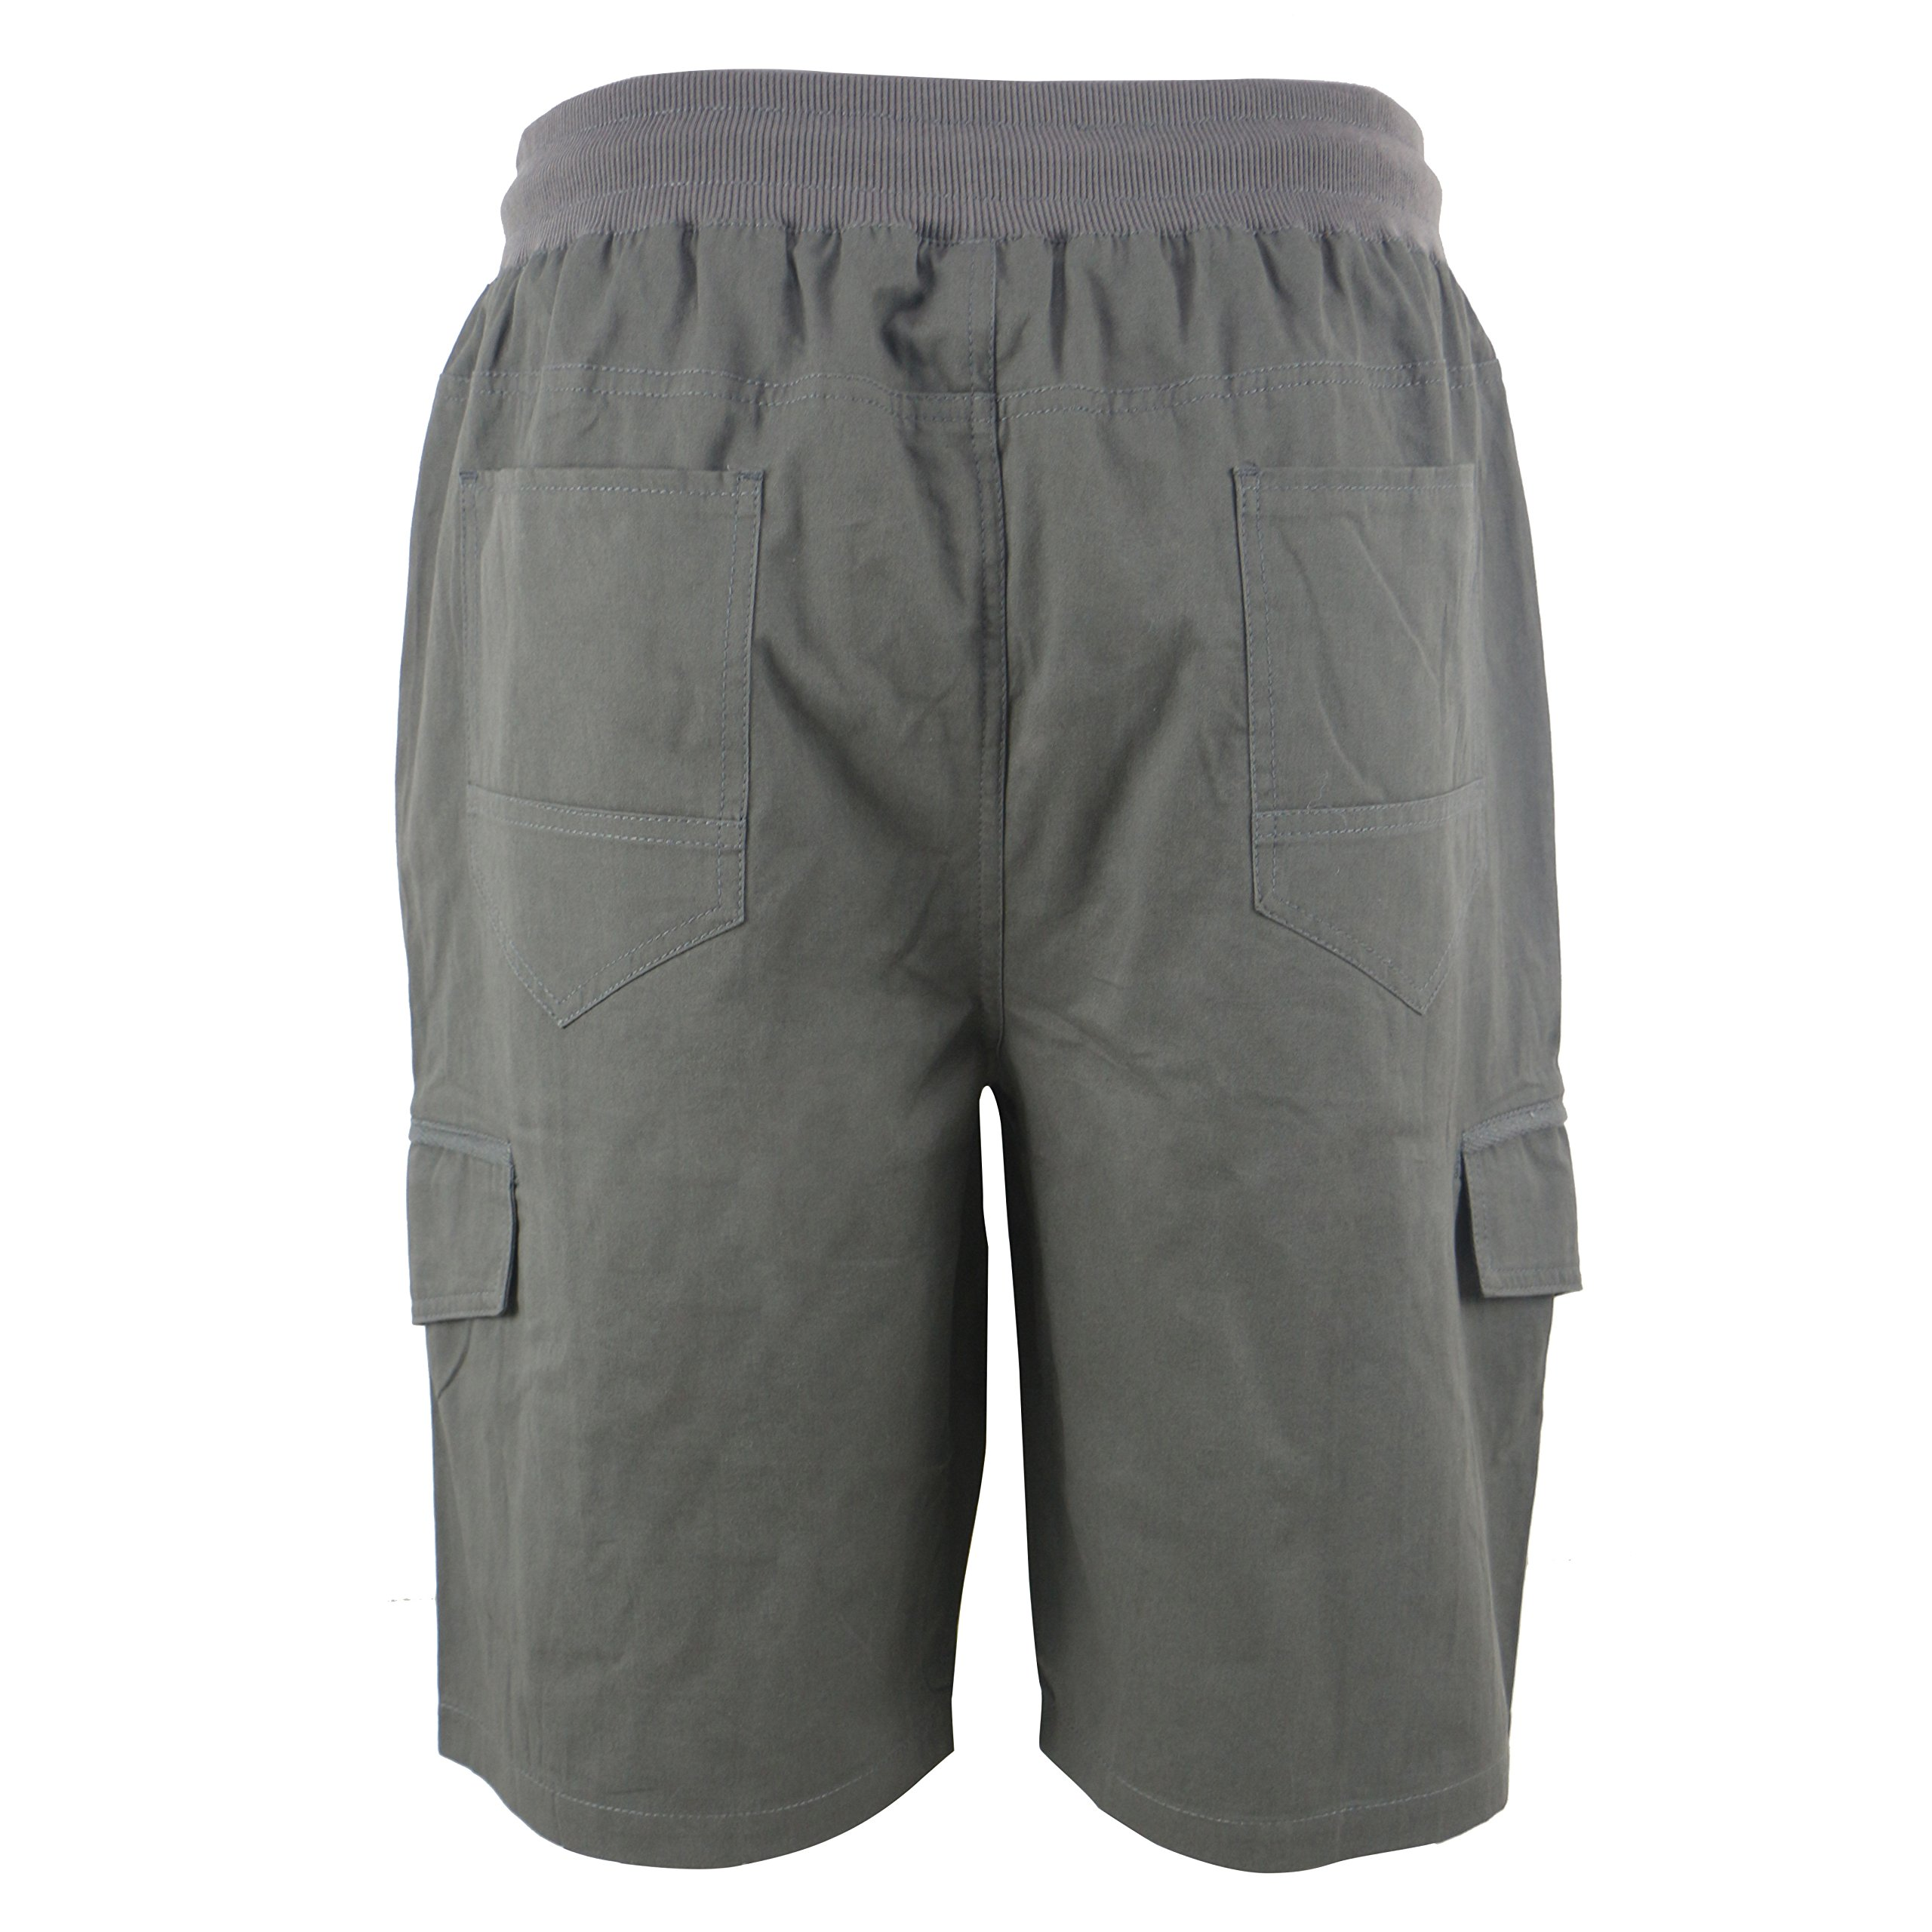 Tanbridge Men's Cotton Cargo Shorts with Pockets Loose Fit Outdoor Wear Twill Elastic Waist Shorts Grey 36 by Tanbridge (Image #3)